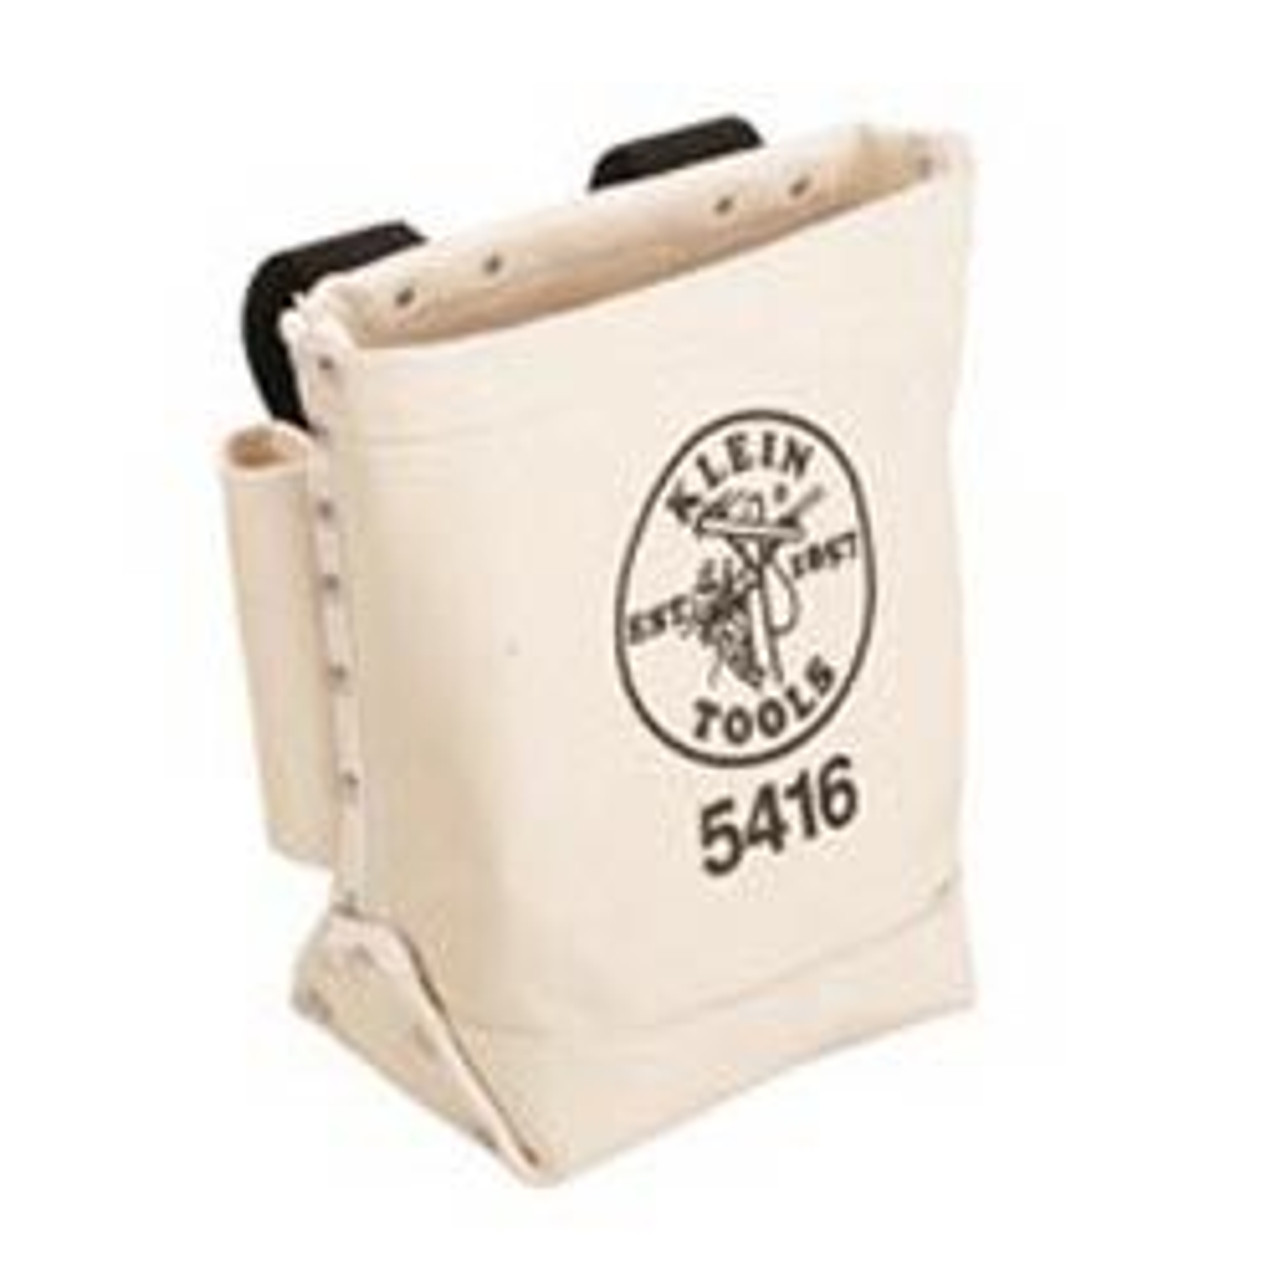 Klein 5416 Canvas Bolt and Bull-Pin Bag